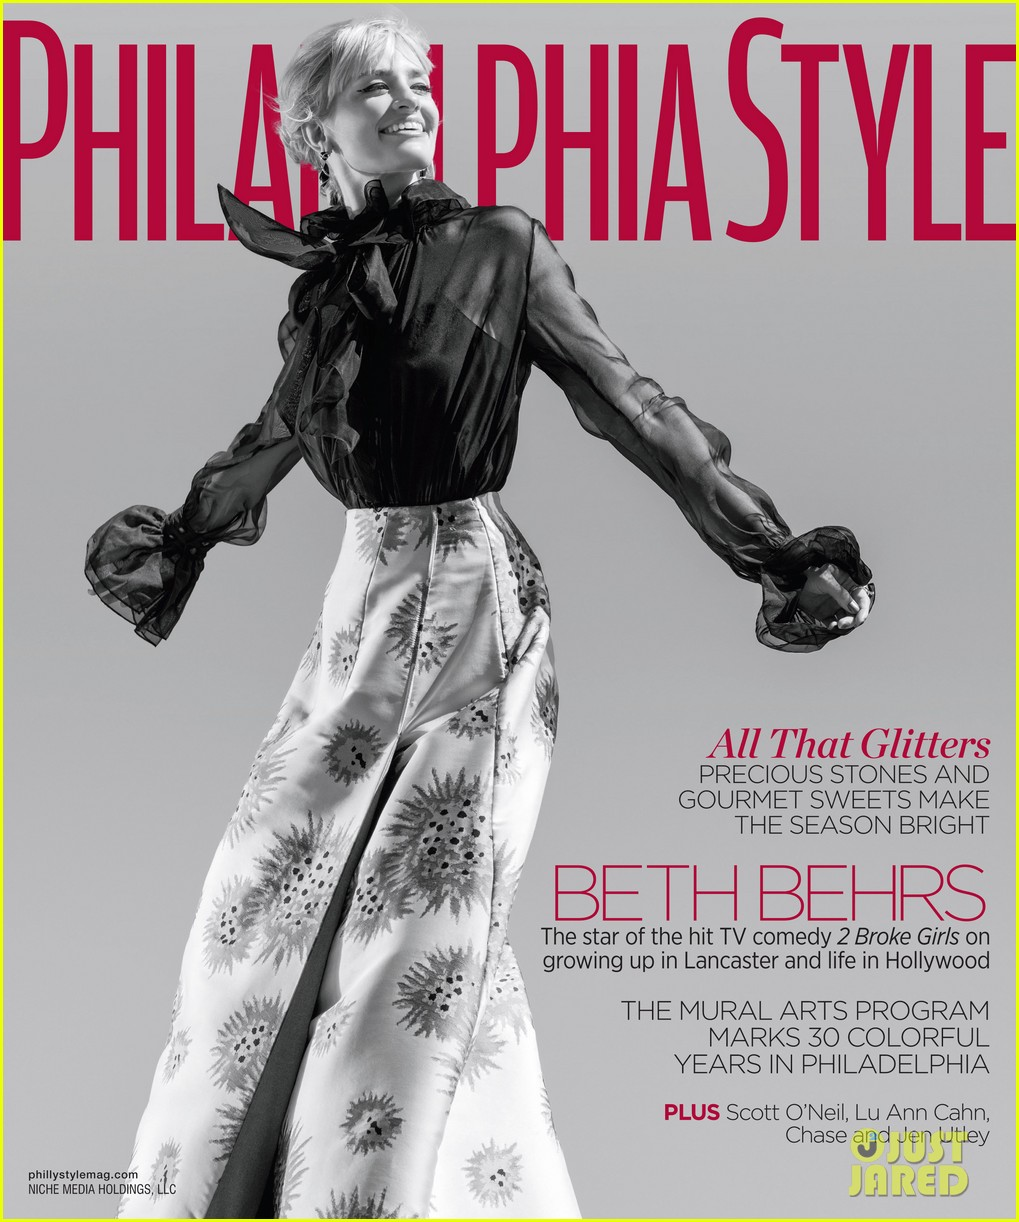 2 broke girls beth behrs covers philadelphia style 013016620